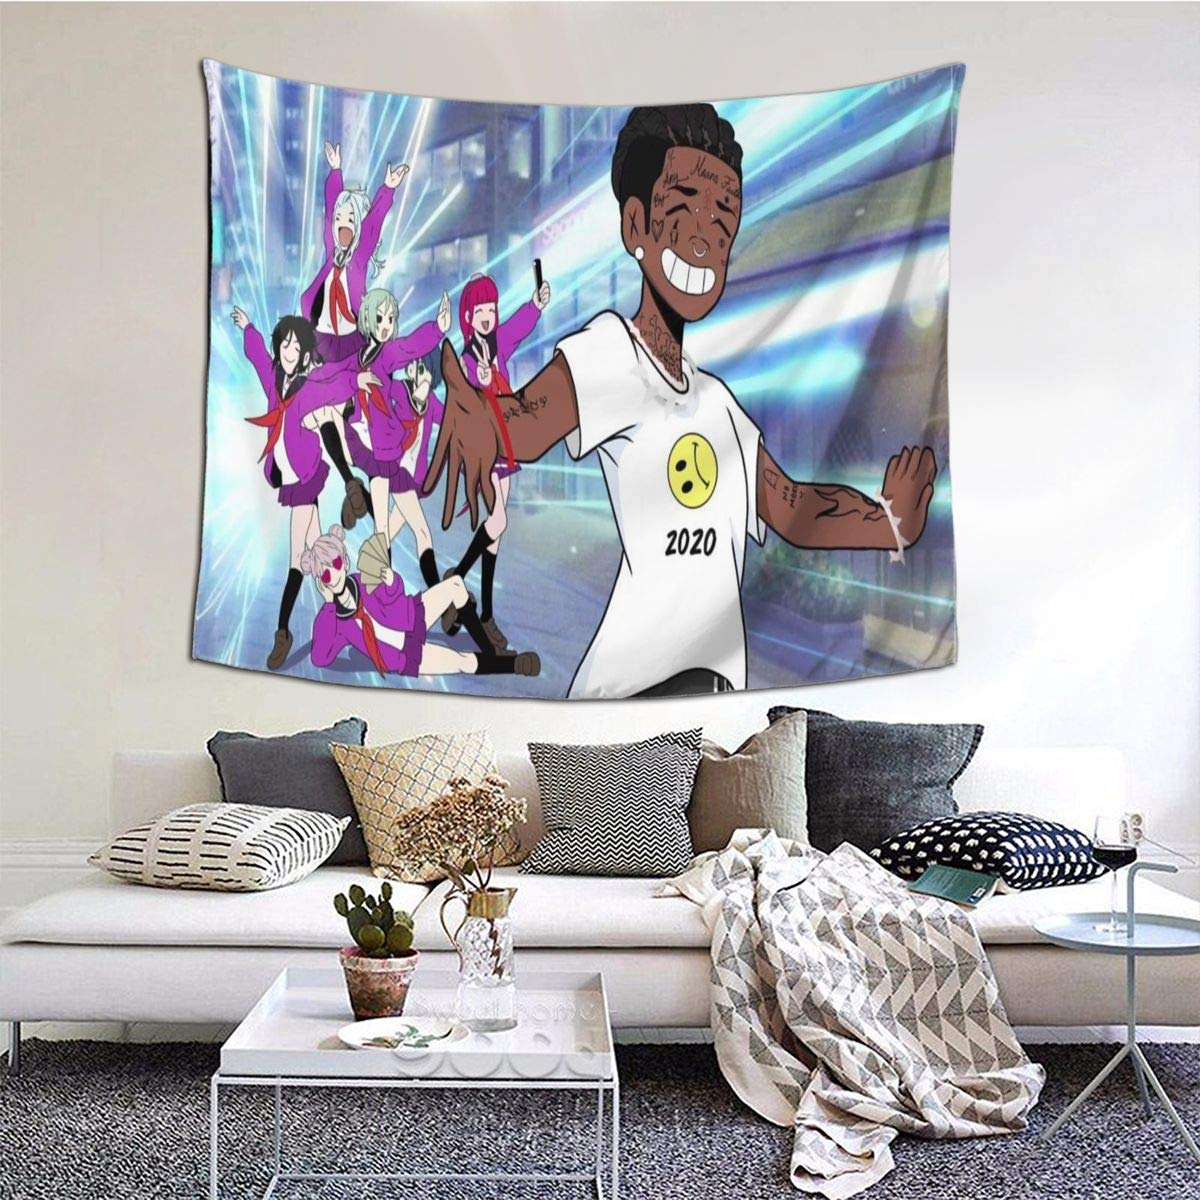 Buy Po1 Up Lil Uzi Vert Luv Vs The World Wall Hanging Tapestries 3d Printing Wall Blanket Art For Living Room Bedroom Home 60x51 Inch Online At Low Prices In India Amazon In Lil uzi vert eternal atake (deluxe) — luv vs. amazon in